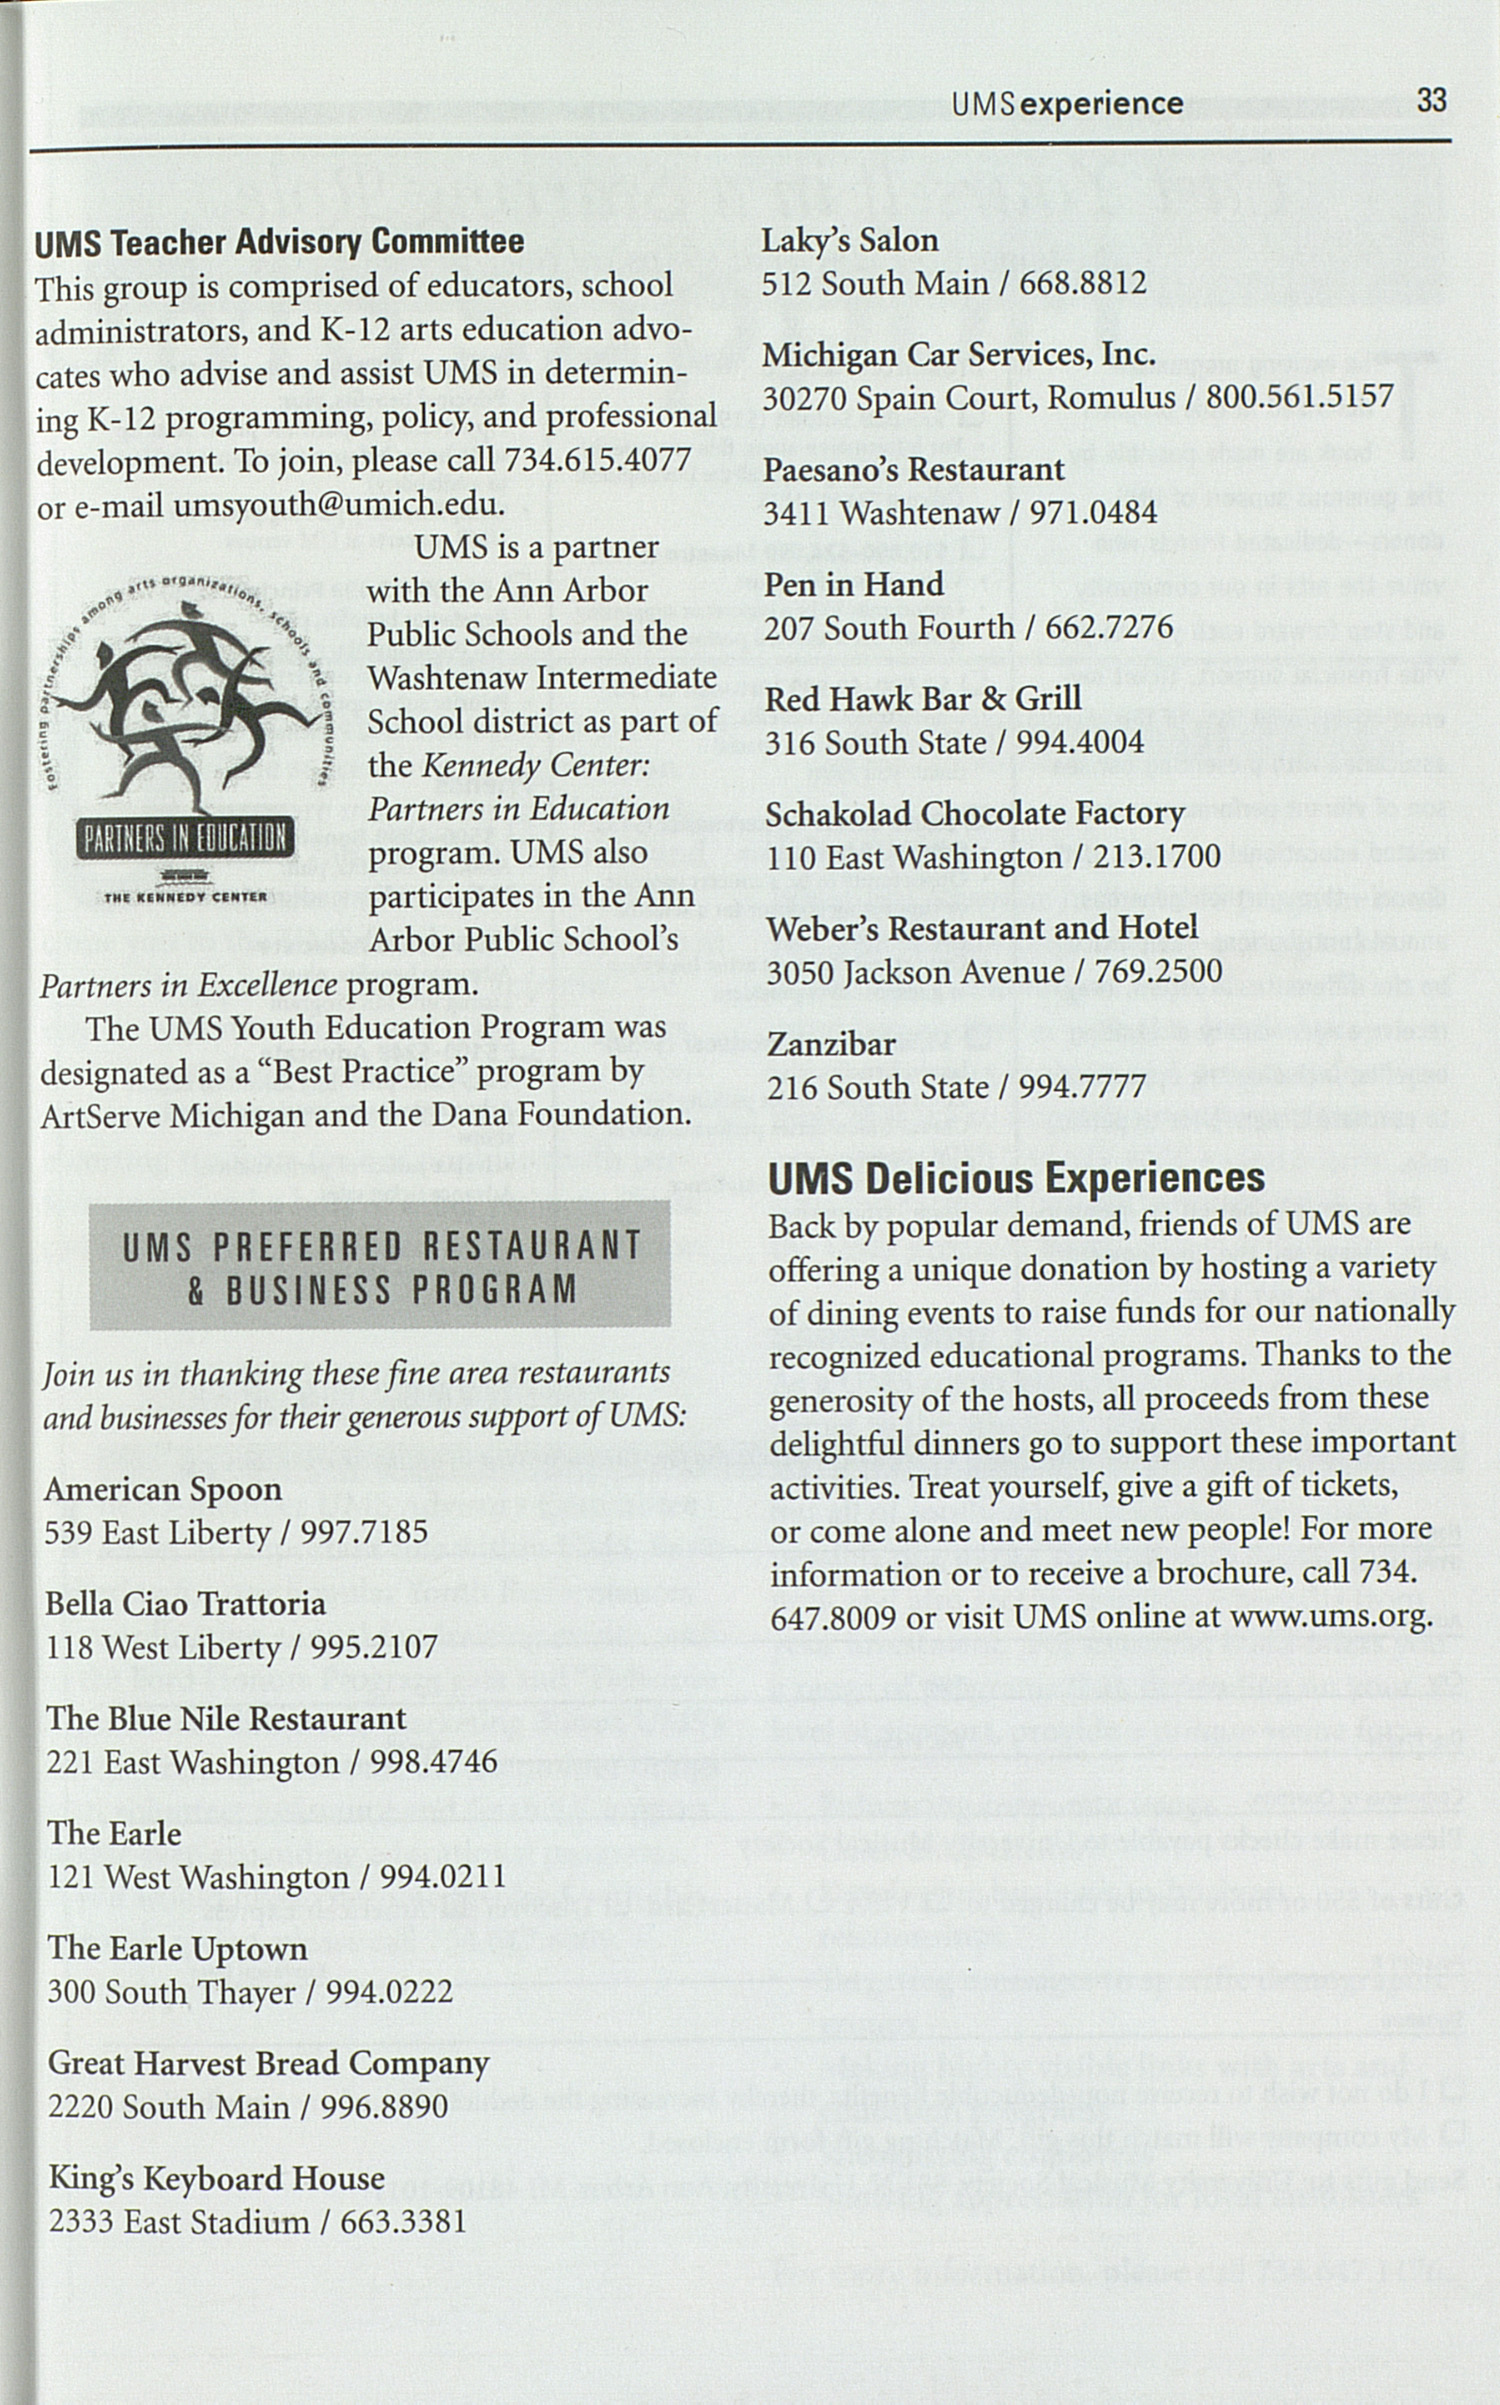 UMS Concert Program, Saturday Oct. 02 To 13: University Musical Society: Fall 2004 - Saturday Oct. 02 To 13 --  image